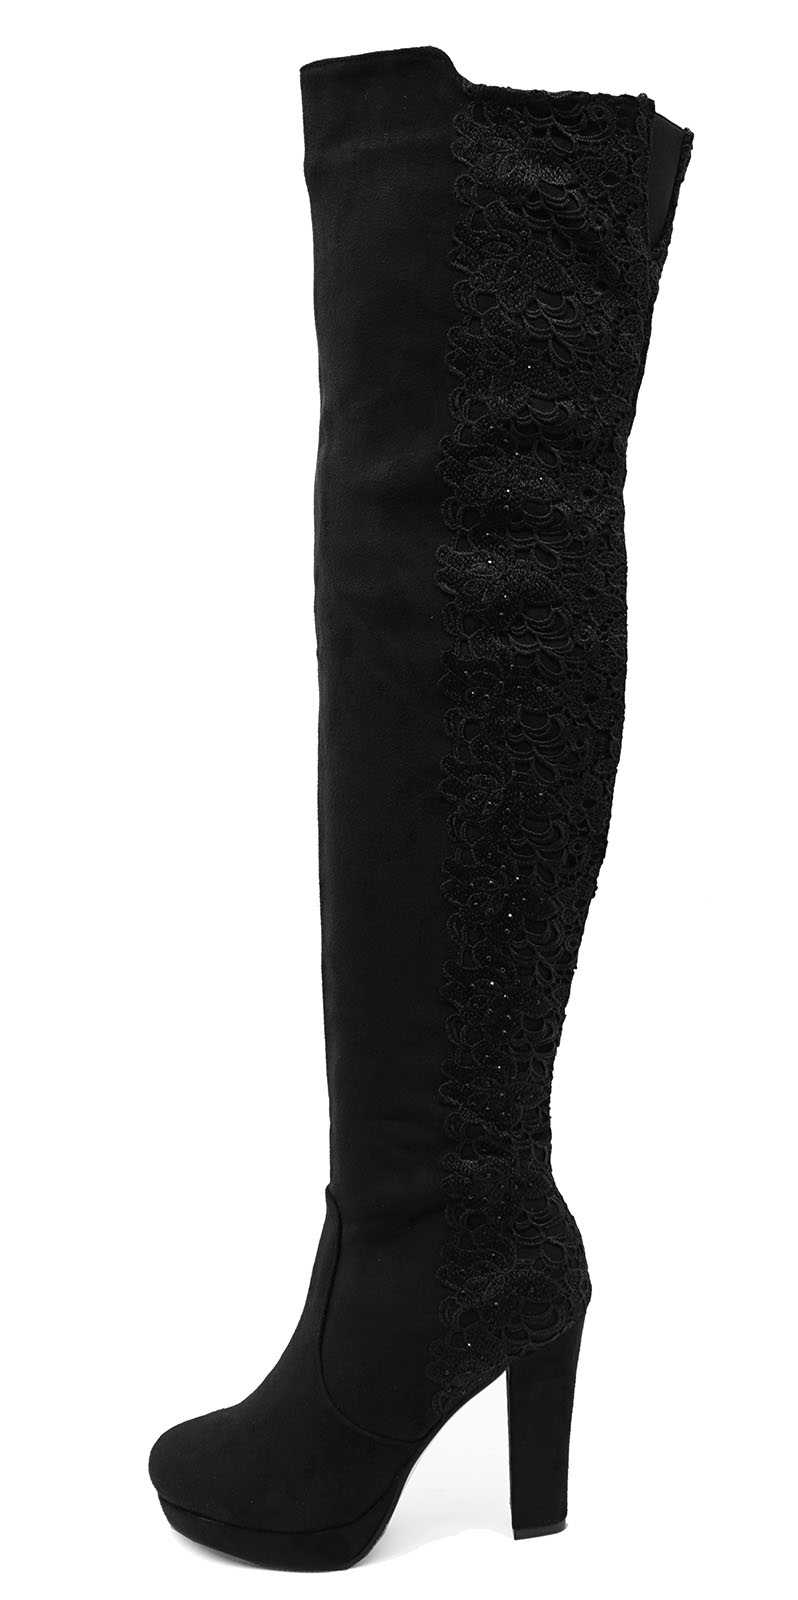 LADIES BLACK LACE OVER THE KNEE HIGH ZIP-UP STRETCH PLATFORM BOOTS SHOES UK 3-8